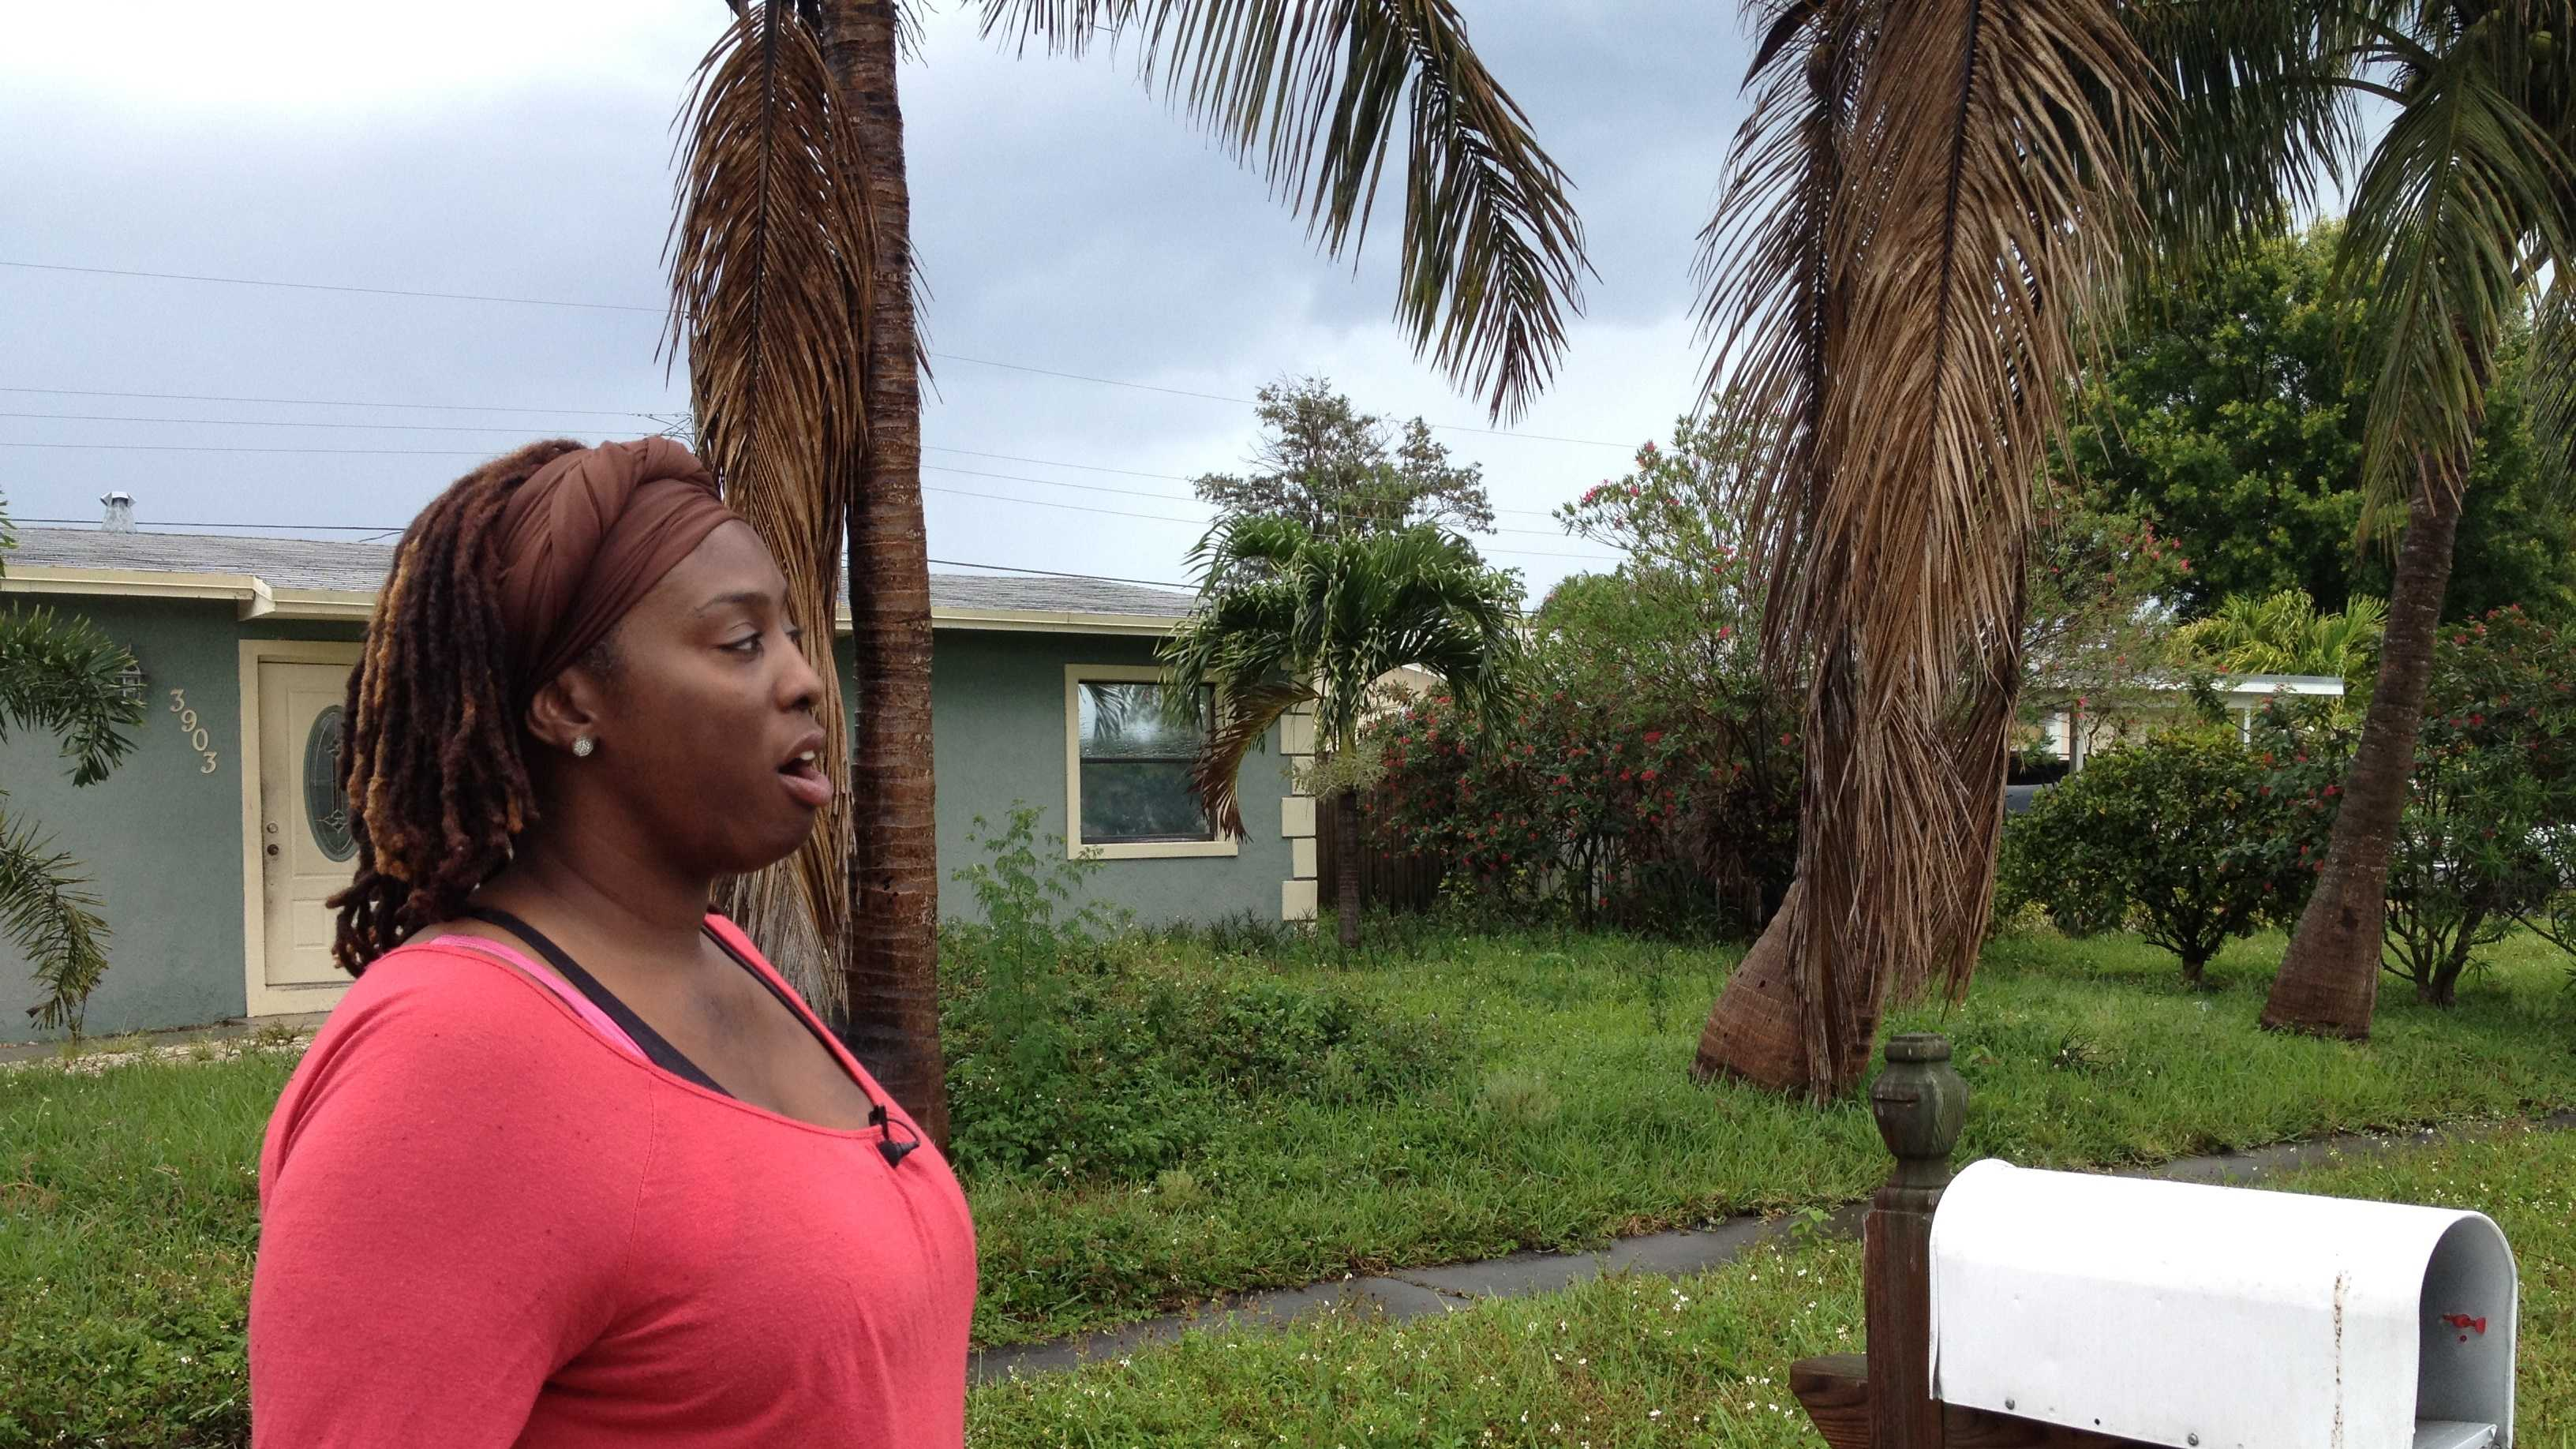 Naomie Breton, who was set on fire by her ex-fiancé last year, stands outside the Lantana home that squatters have taken over, but authorities can't do anything about it.